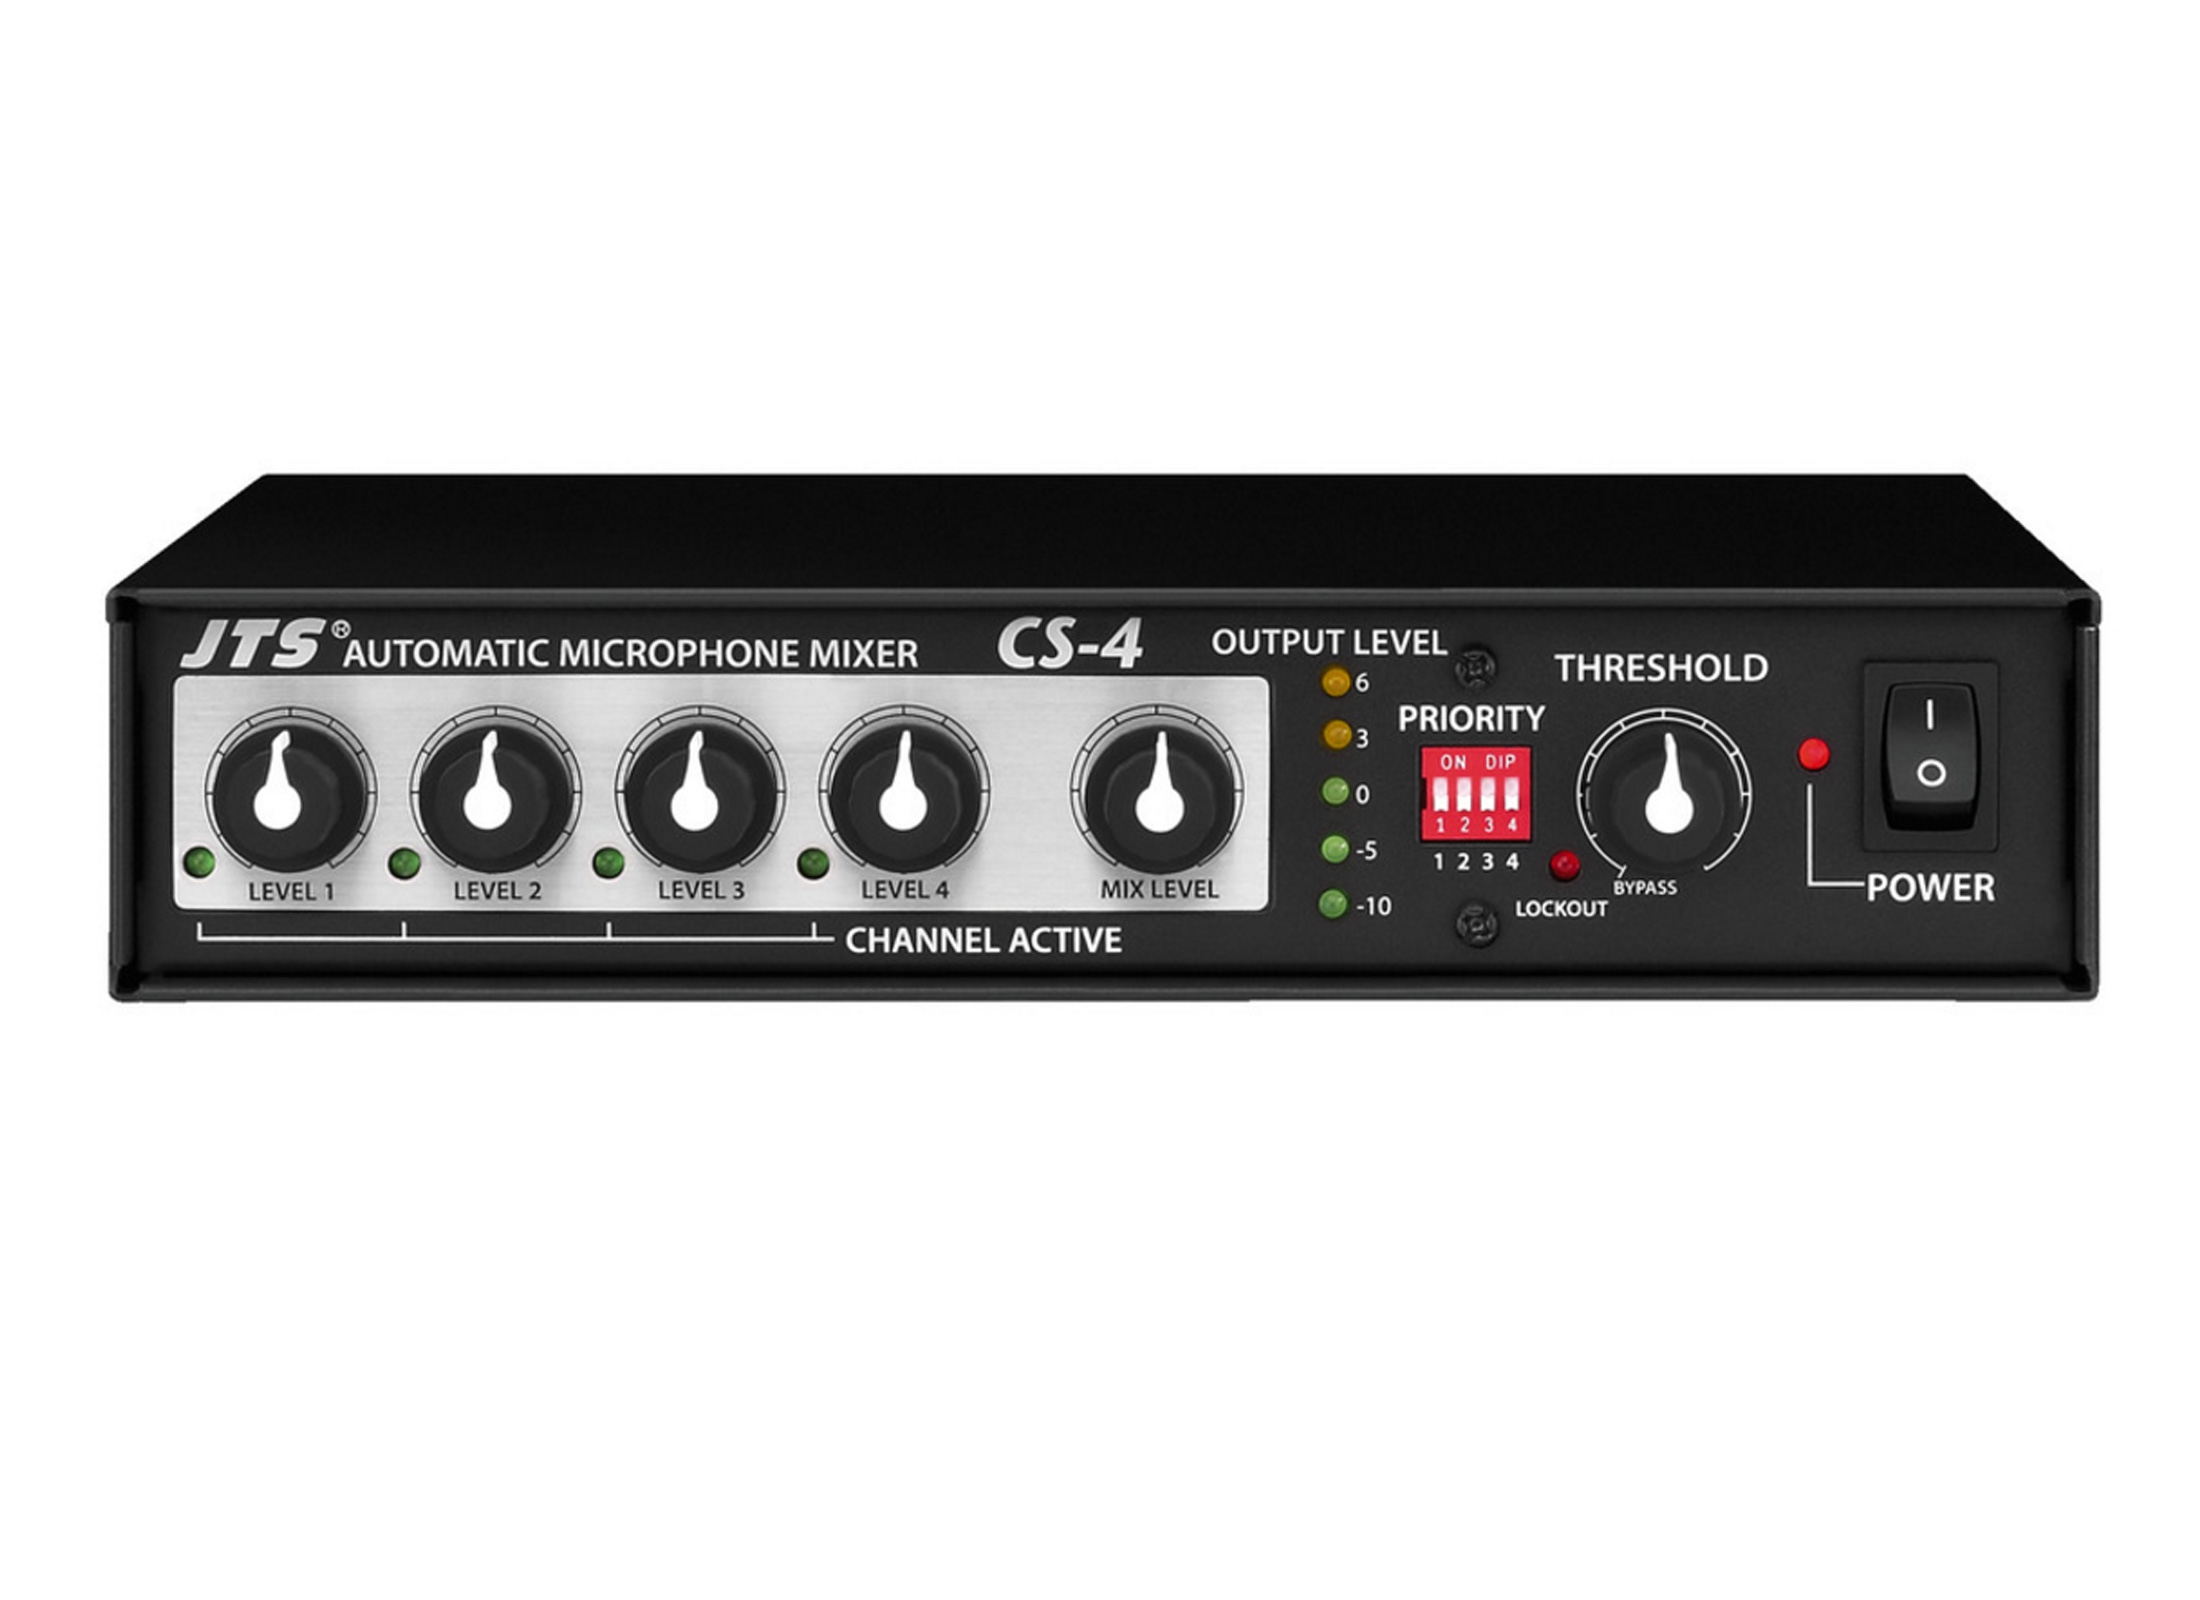 Jts Cs 4 Microphone Mixer Online At Low Prices Huss Light Sound Stereo For With 2 Channels 1